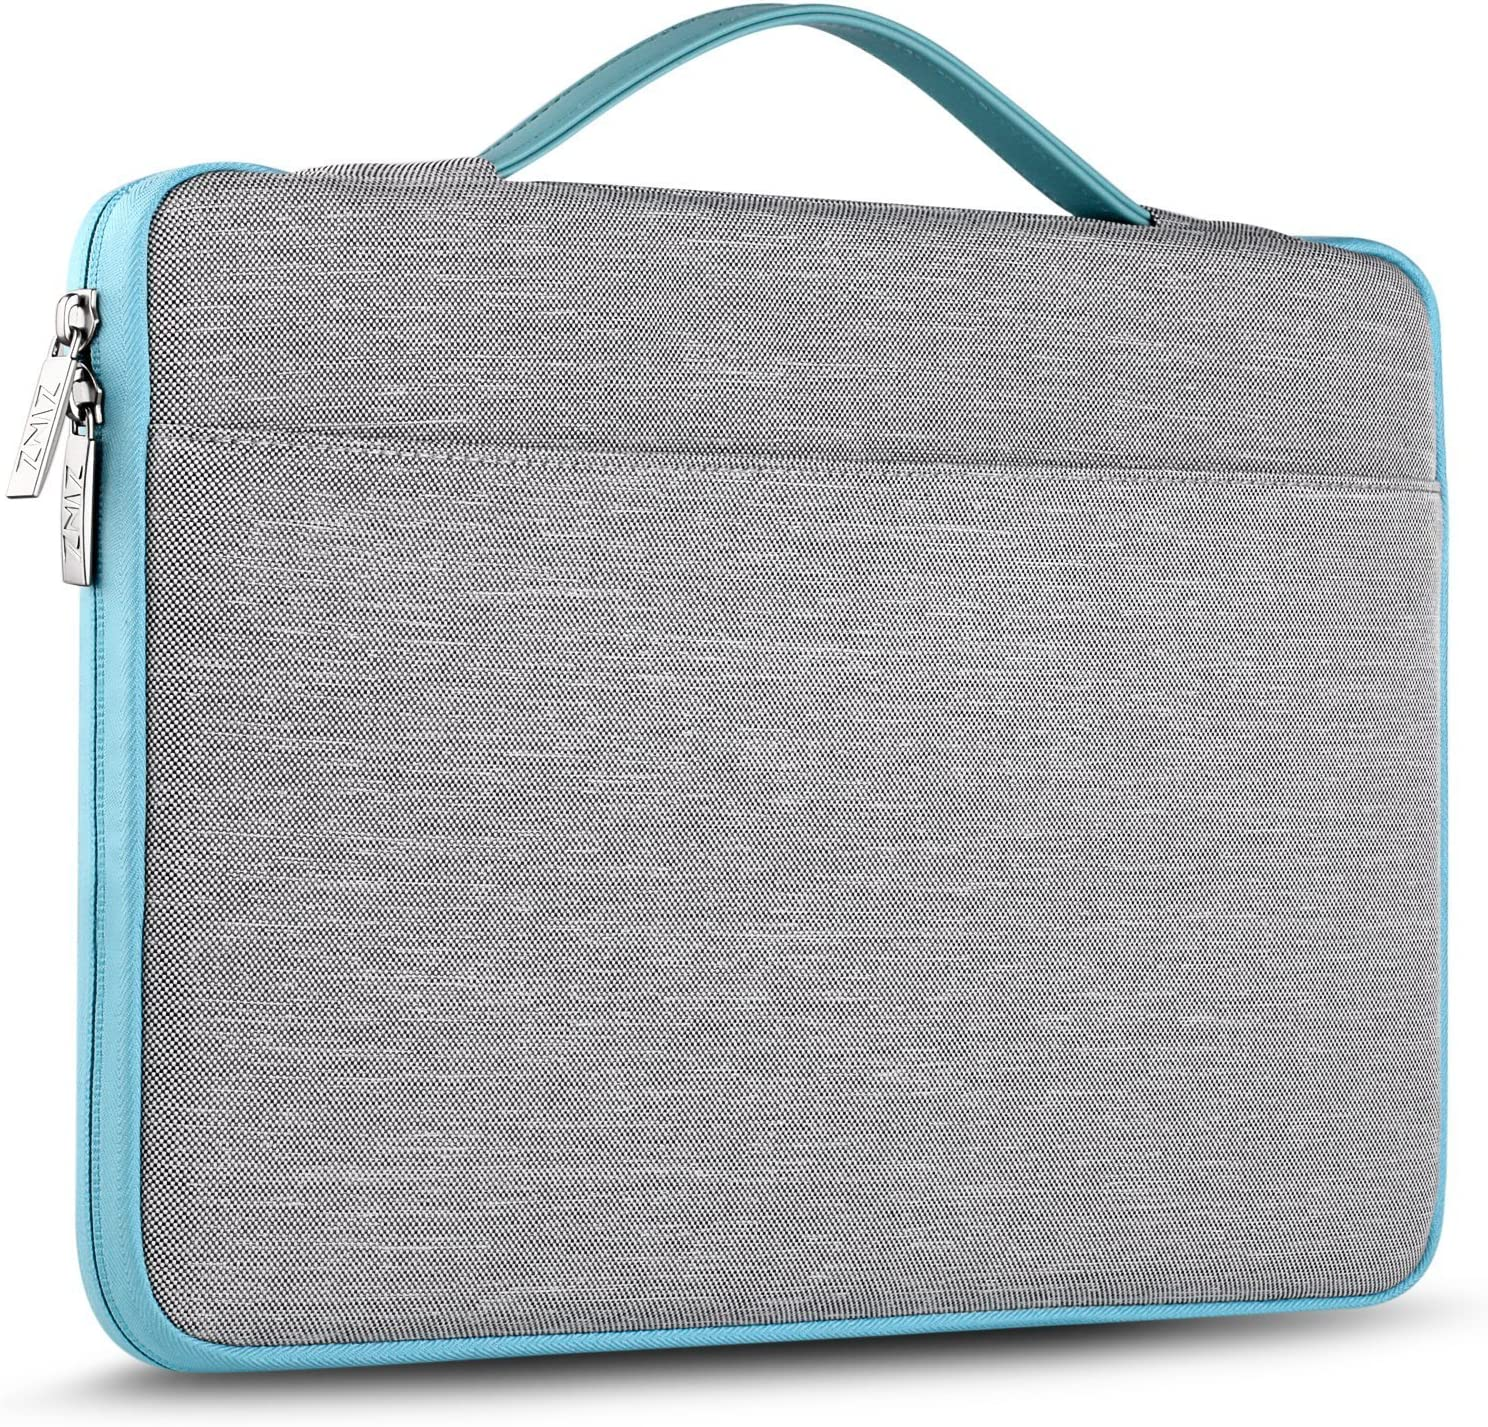 ZINZ Laptop Sleeve 14-15 Inch Case Briefcase, Compatible MacBook Pro A1990 A1707, XPS 15 Super Slim Spill-Resistant Handbag for Most Popular 14-15 inch Notebooks, Gray